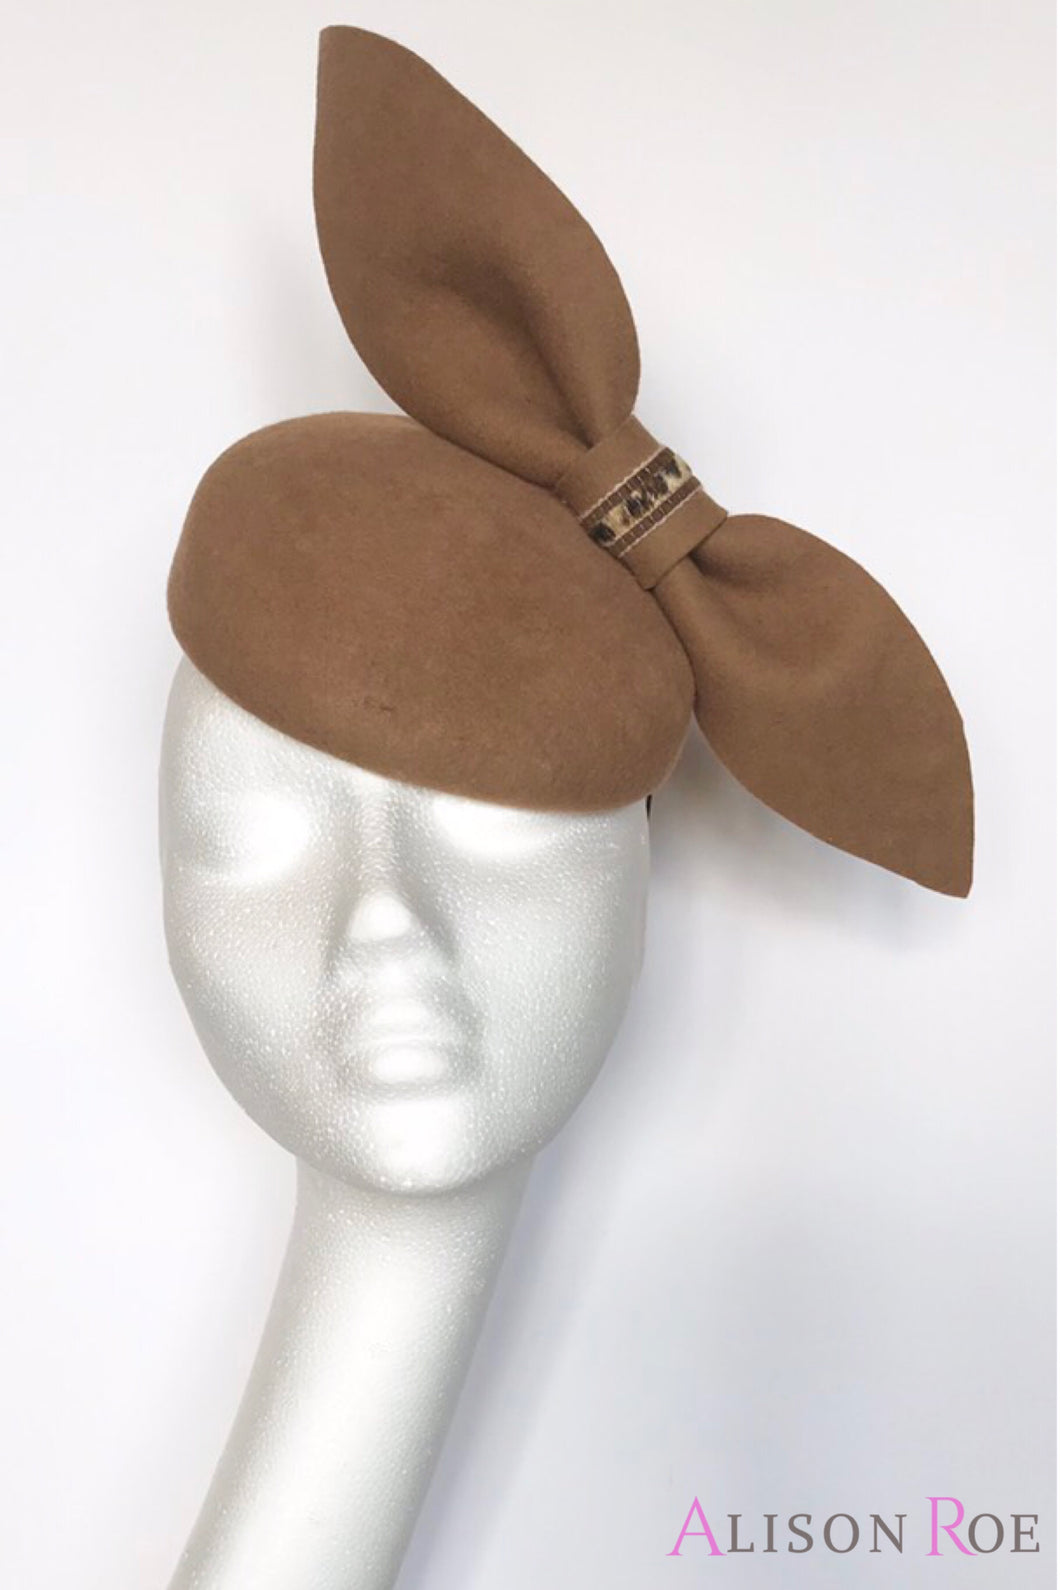 B35 - Light Brown Felt Headpiece with Felt Bow for Hire